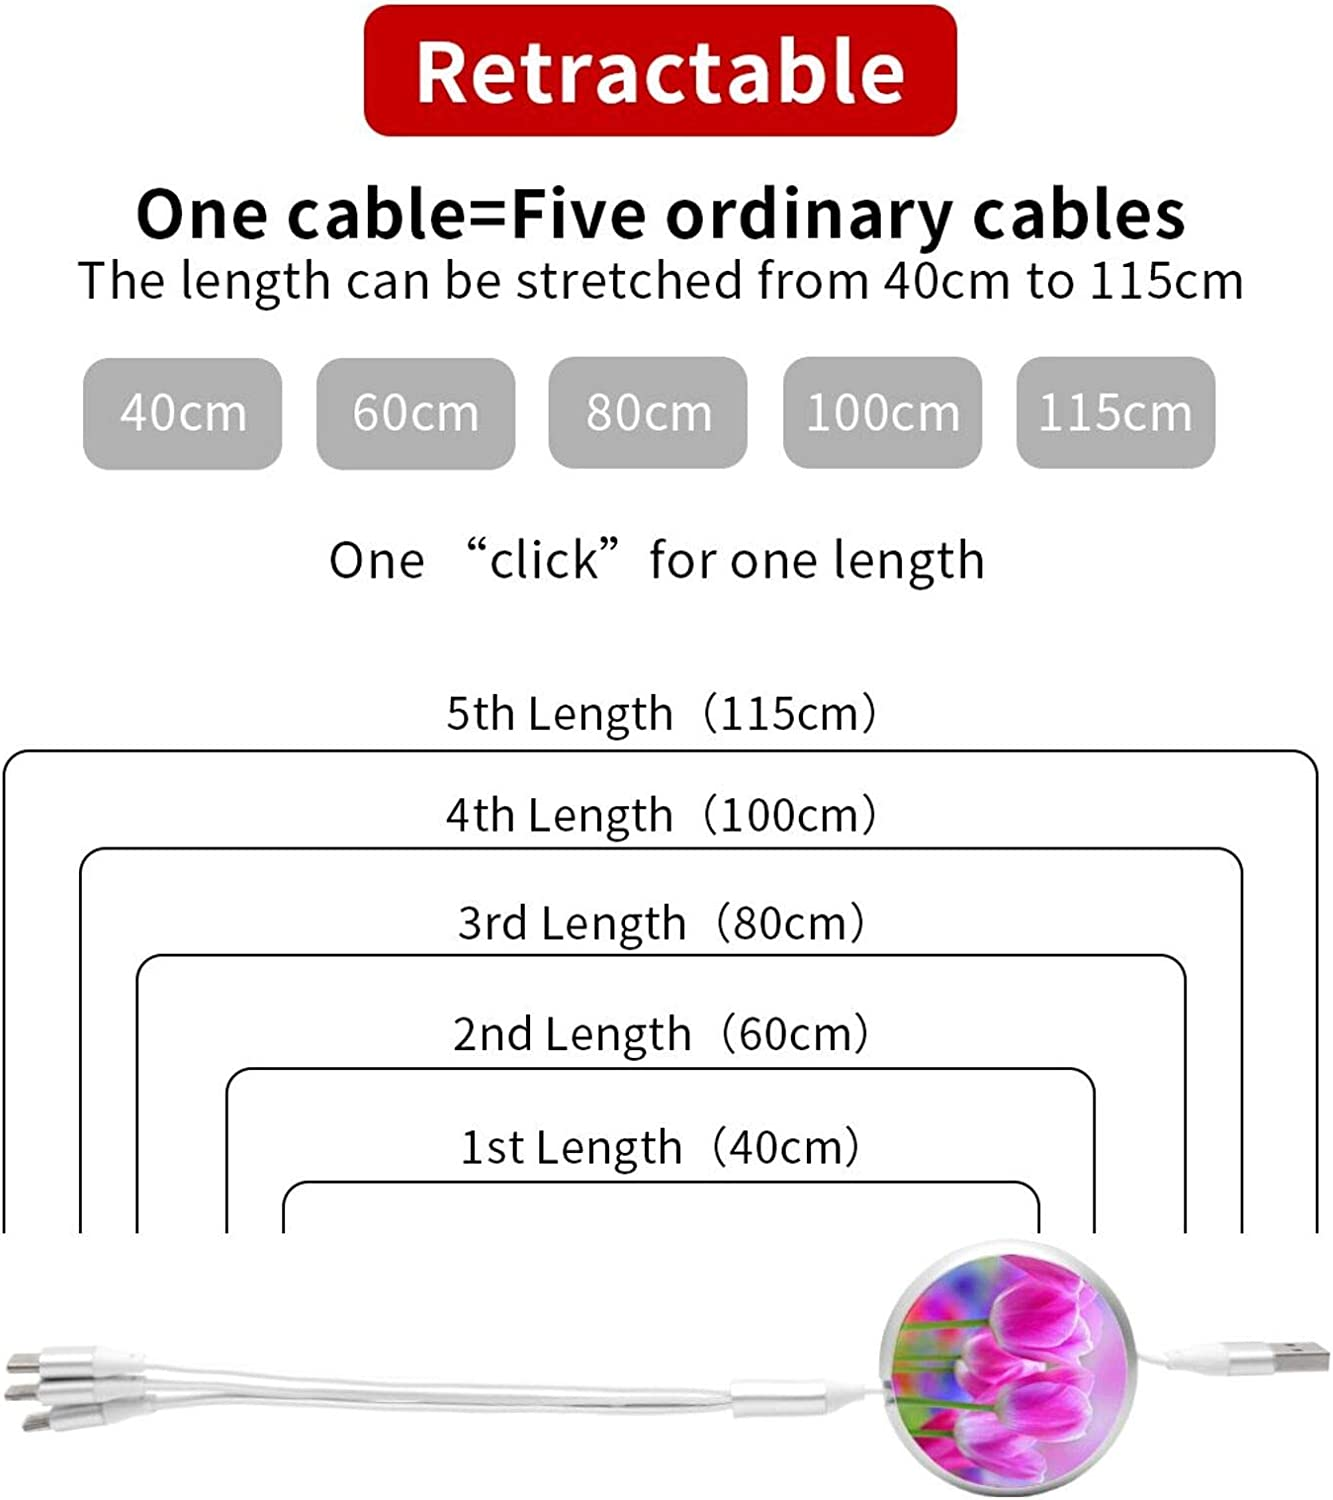 3 in 1 Retractable USB Charger Cable Cord Tulips Fast Charging Graphic USB Charge Cord Compatible with Cell Phones Tablets Universal Use